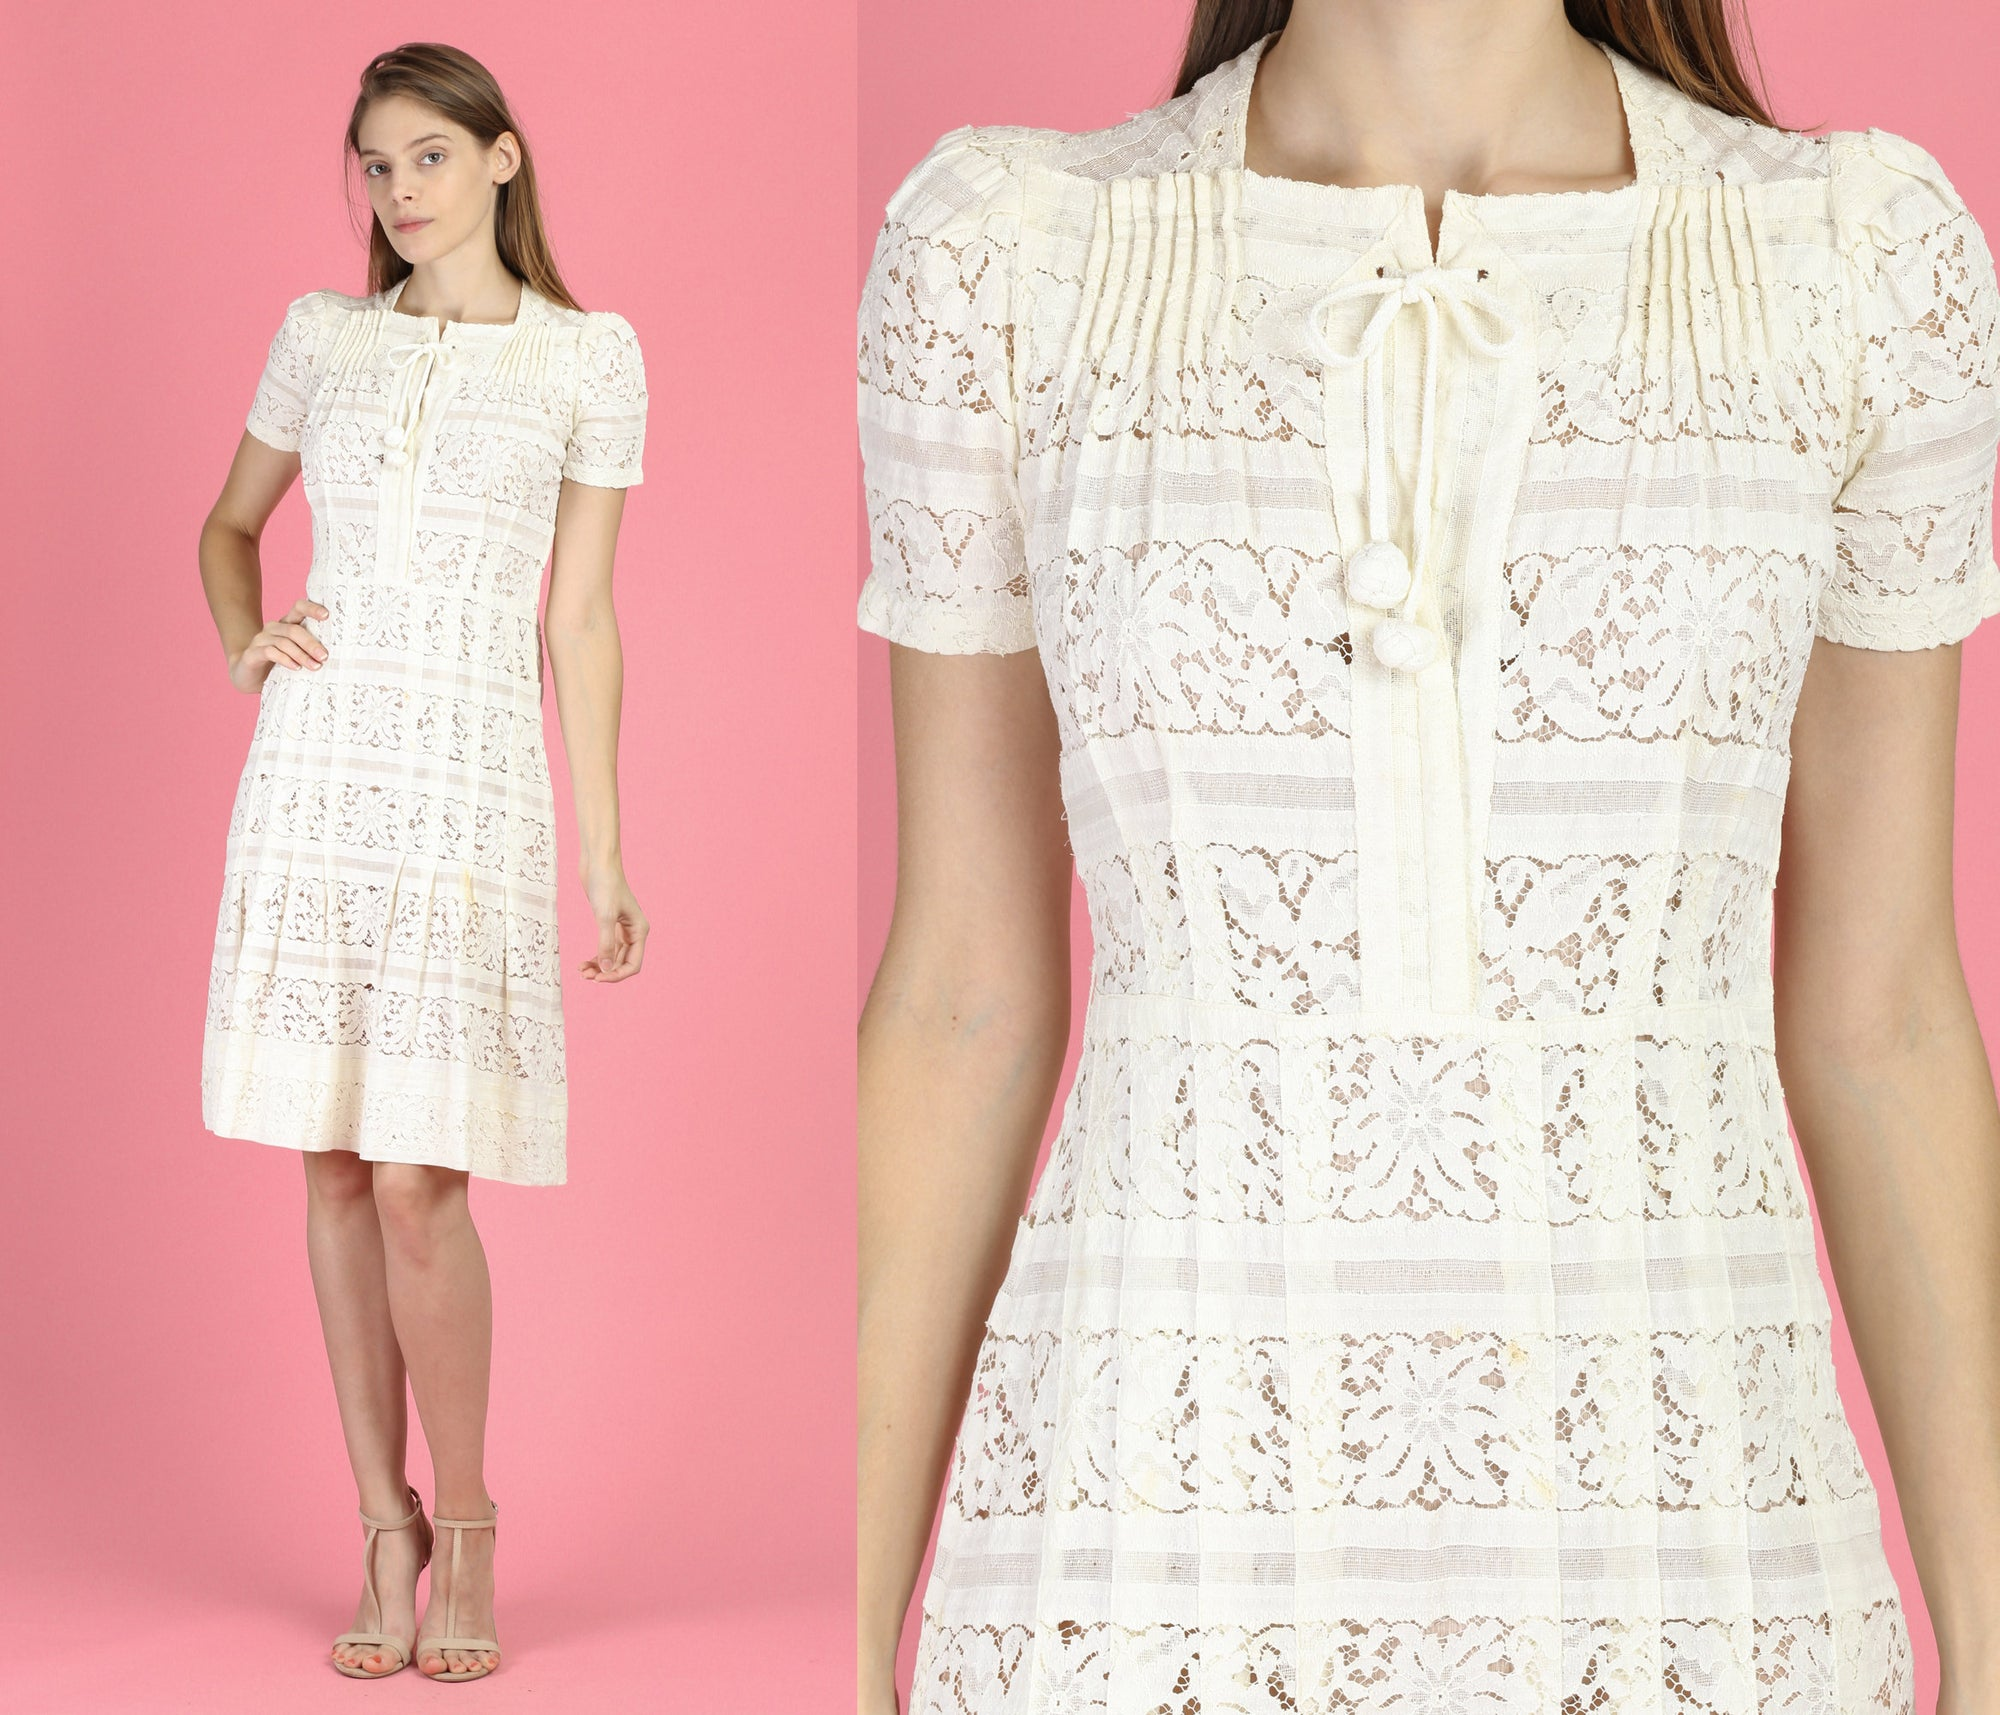 Vintage 1940s White Lace Day Dress - Extra Small